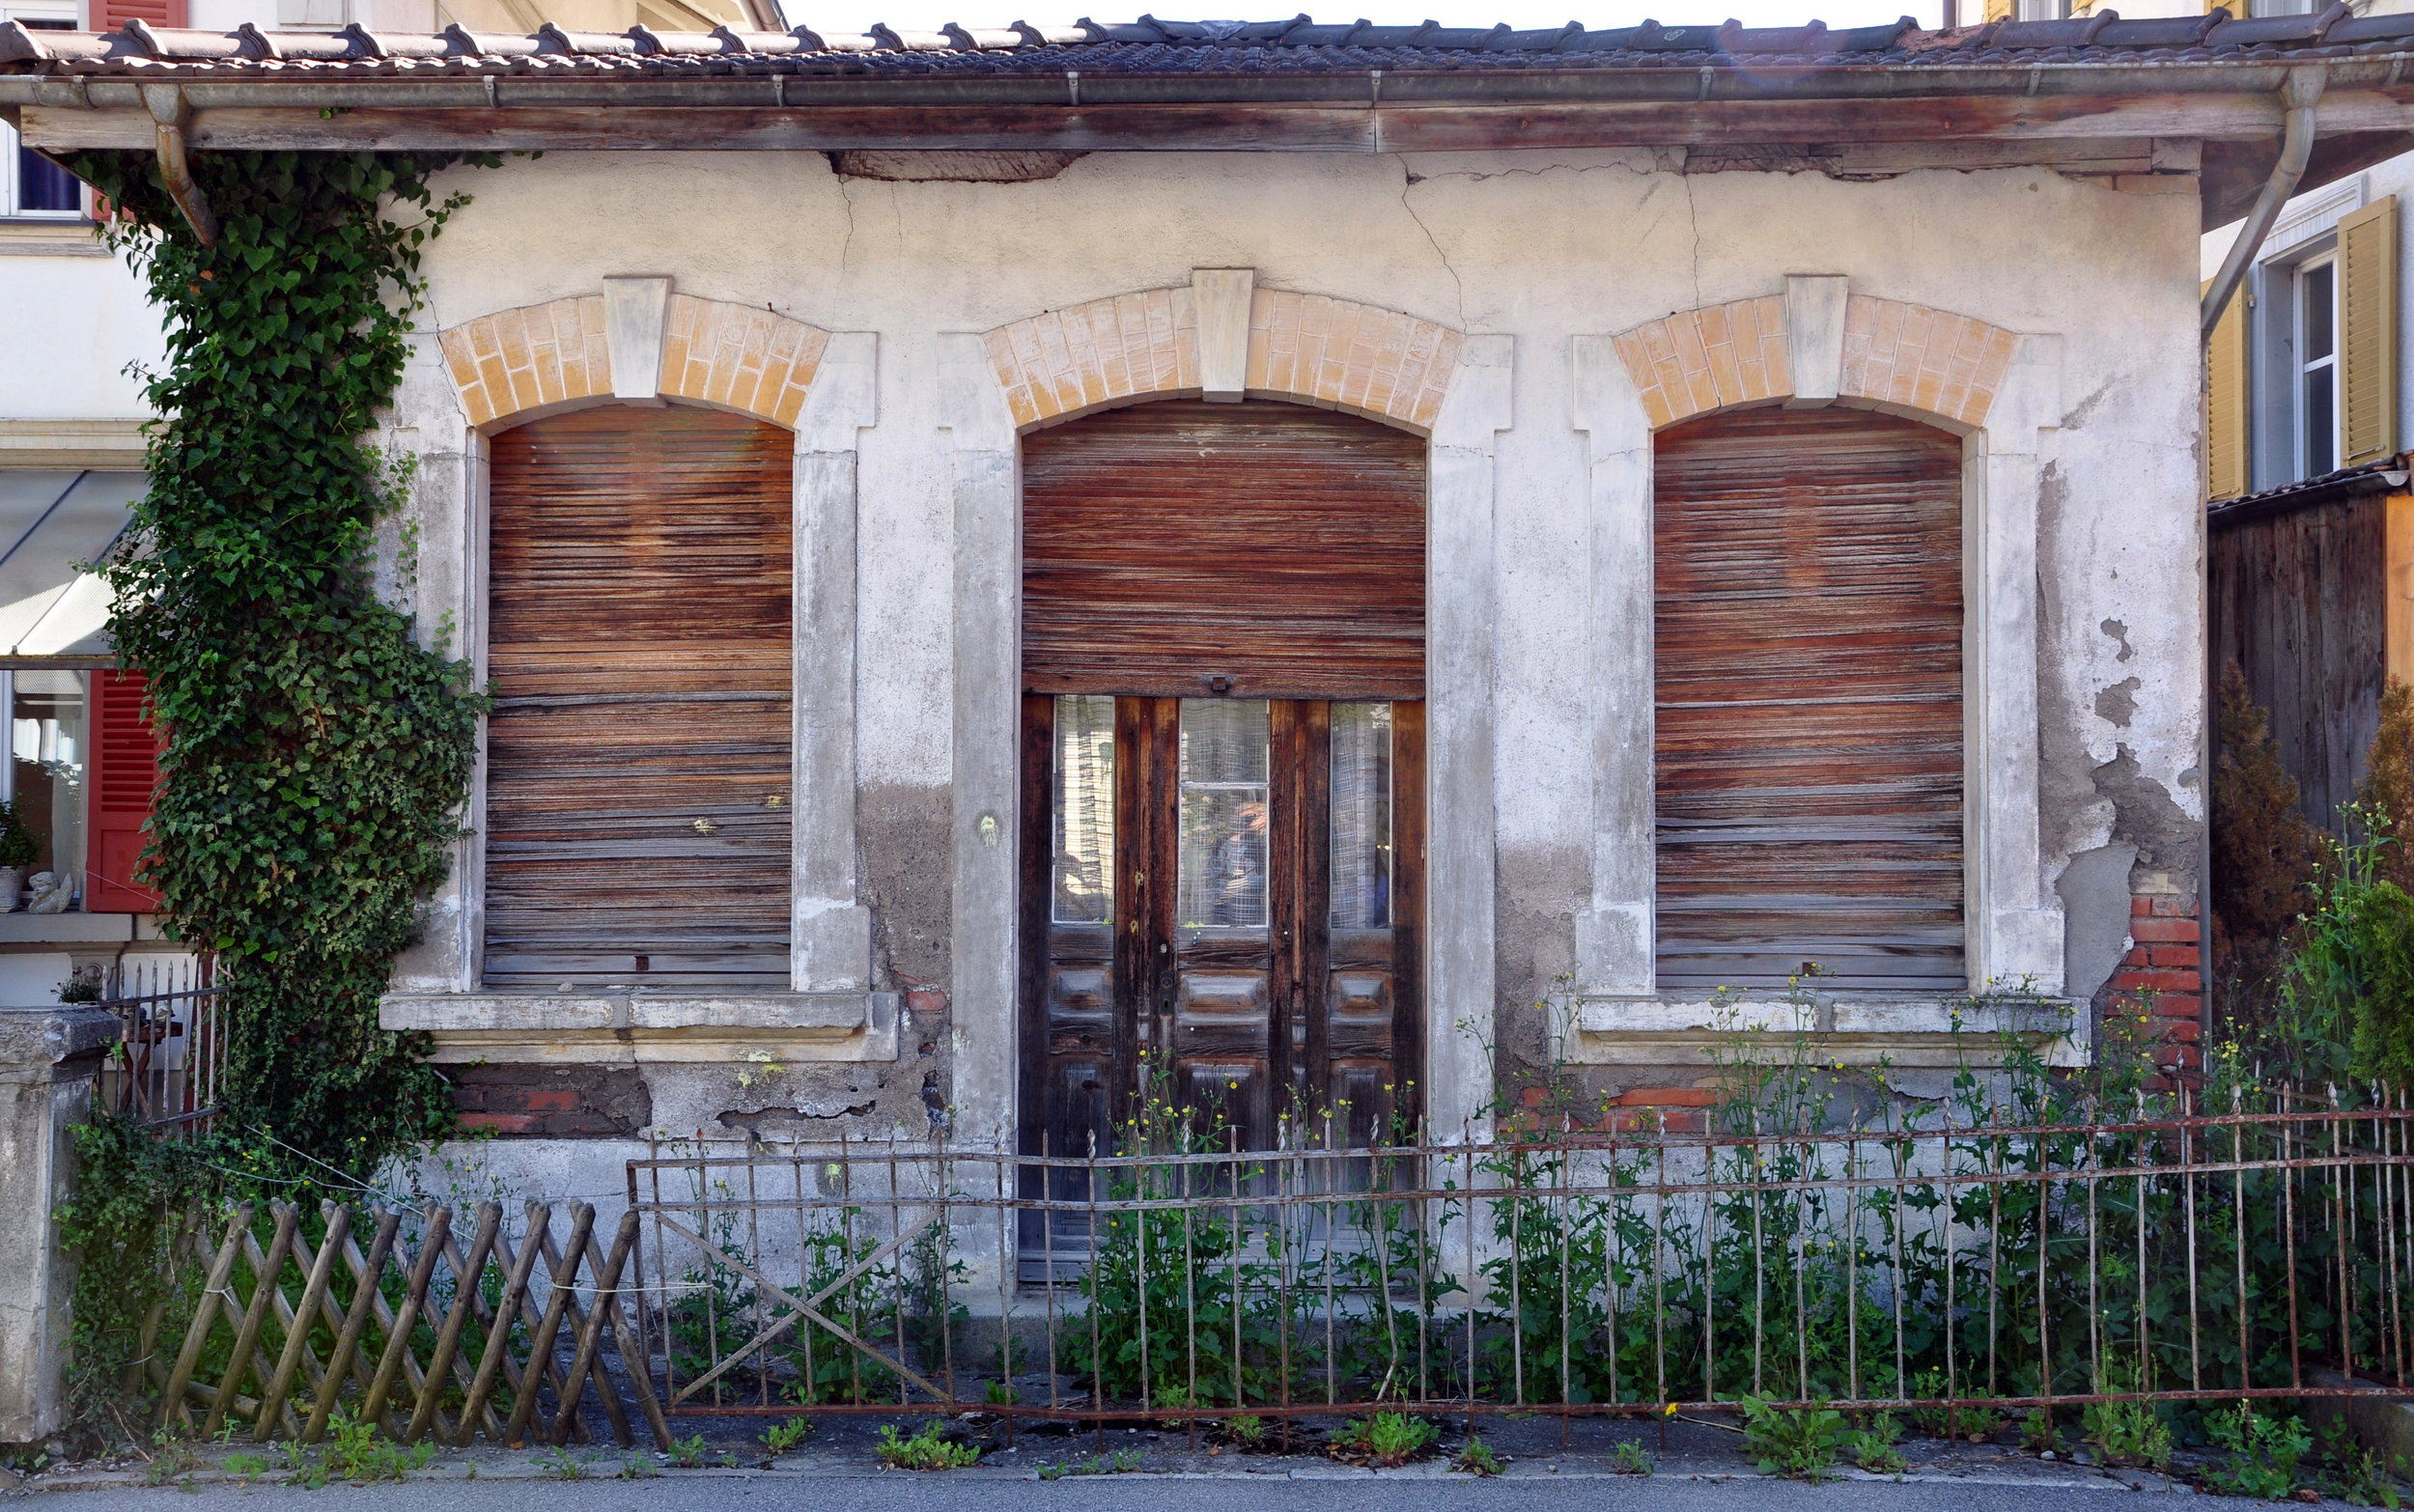 Abandoned home in Wilderswil